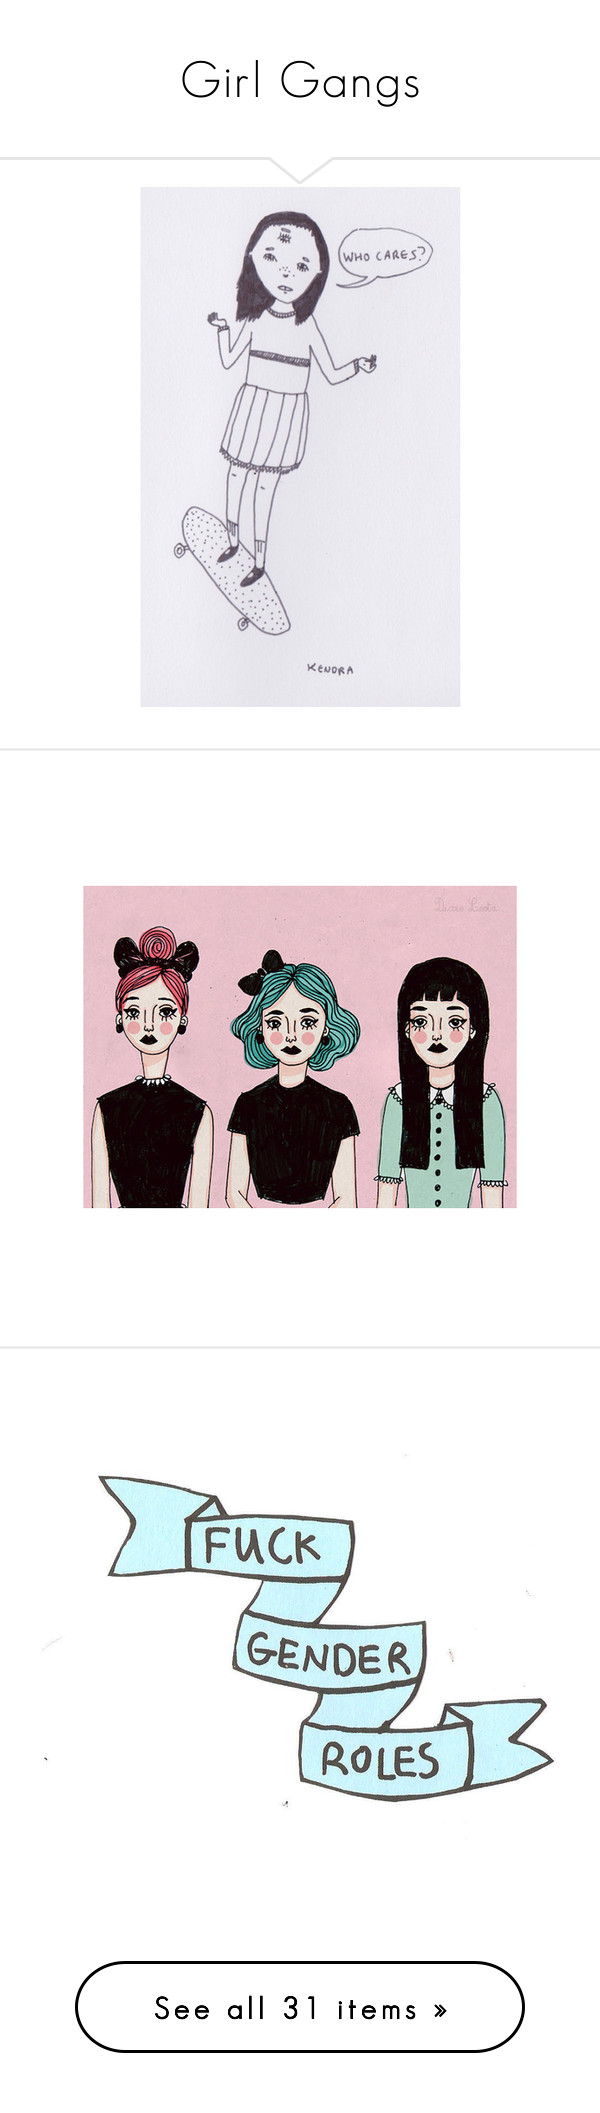 """""""Girl Gangs"""" by kai-vienna ❤ liked on Polyvore featuring feminism, rookie, drawings, fillers, pictures, backgrounds, drawing, doodle, scribble and photos"""